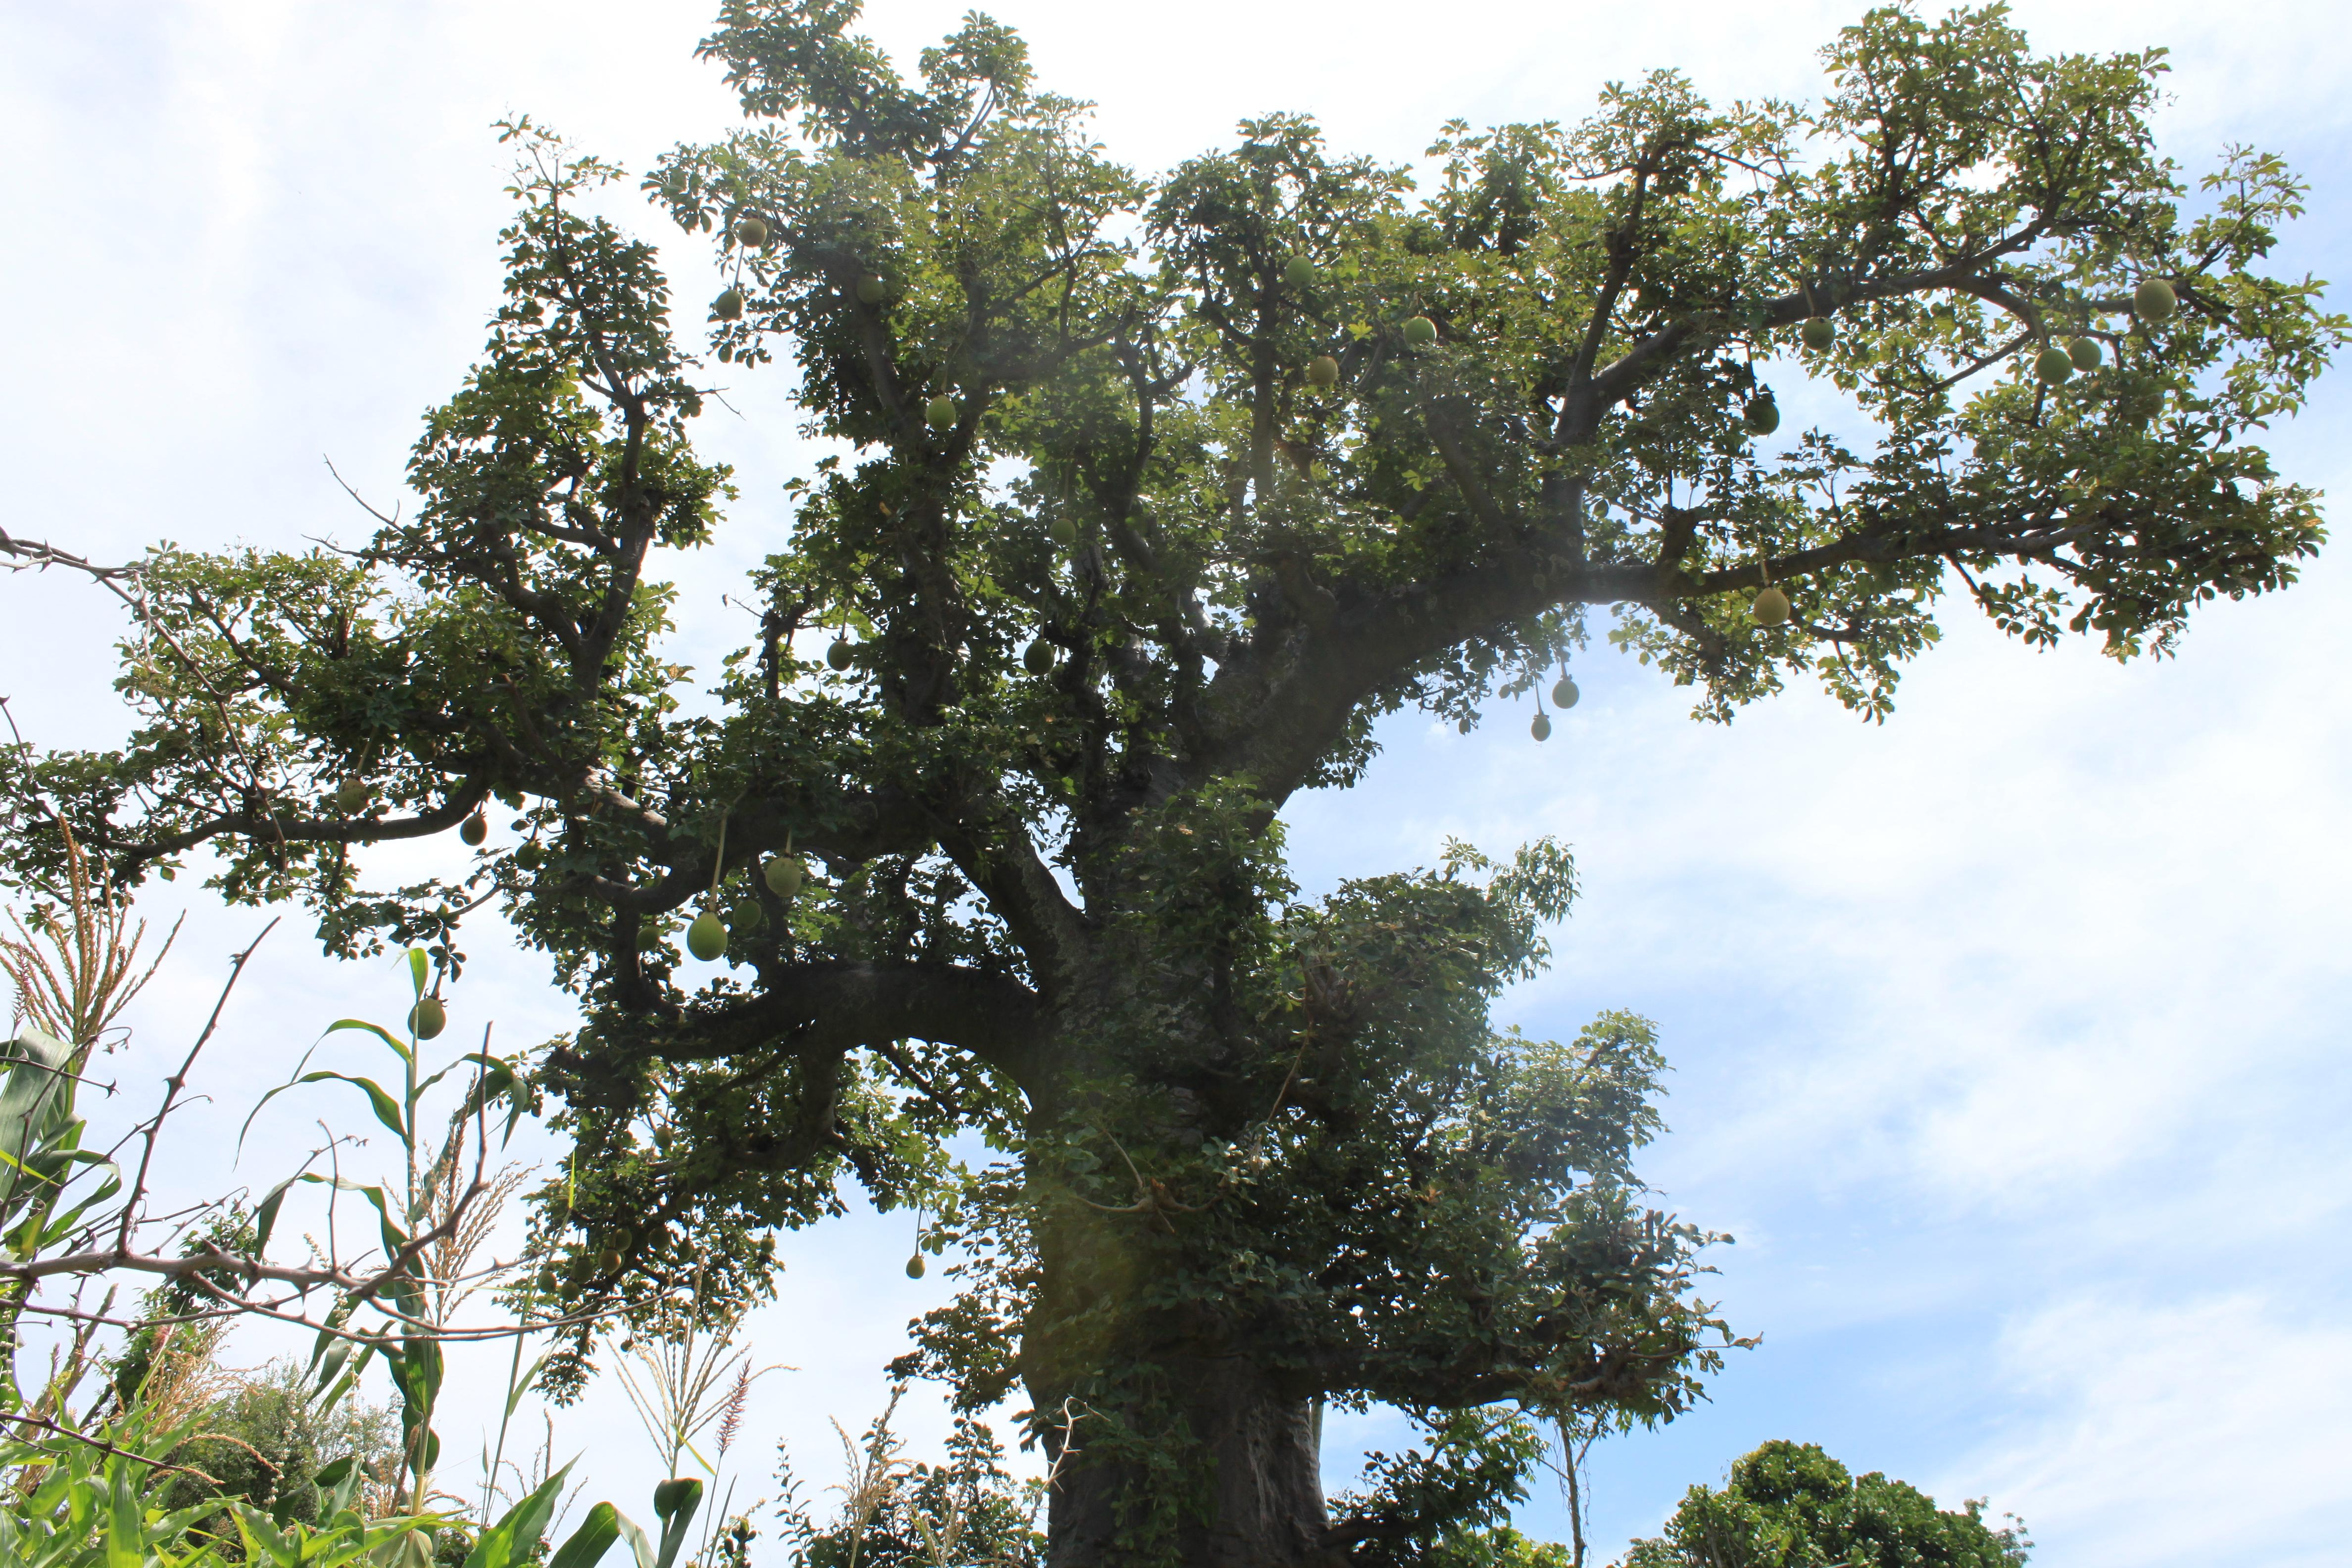 http://upload.wikimedia.org/wikipedia/commons/b/b6/Baobab_with_fruits_in_Cameroon.JPG